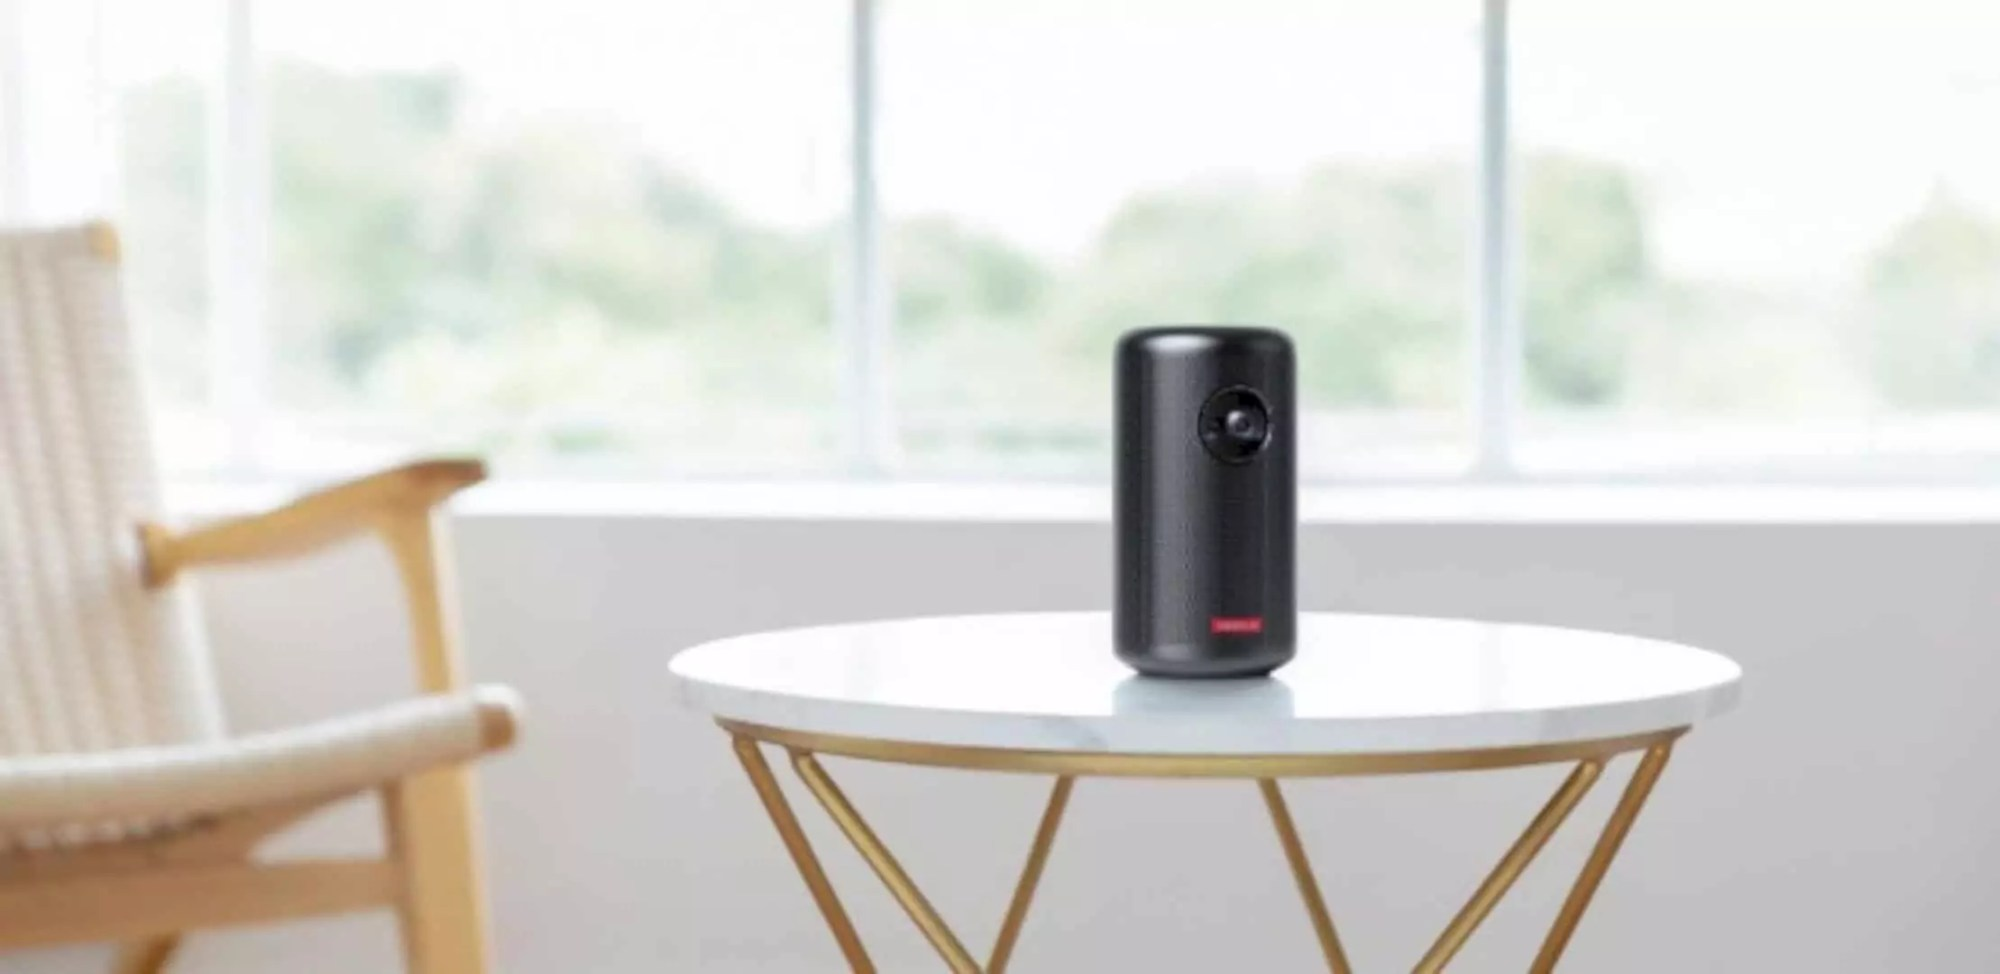 Nebula Capsule II: World's First Android TV™ Pocket Cinema with Unlimited Entertainment